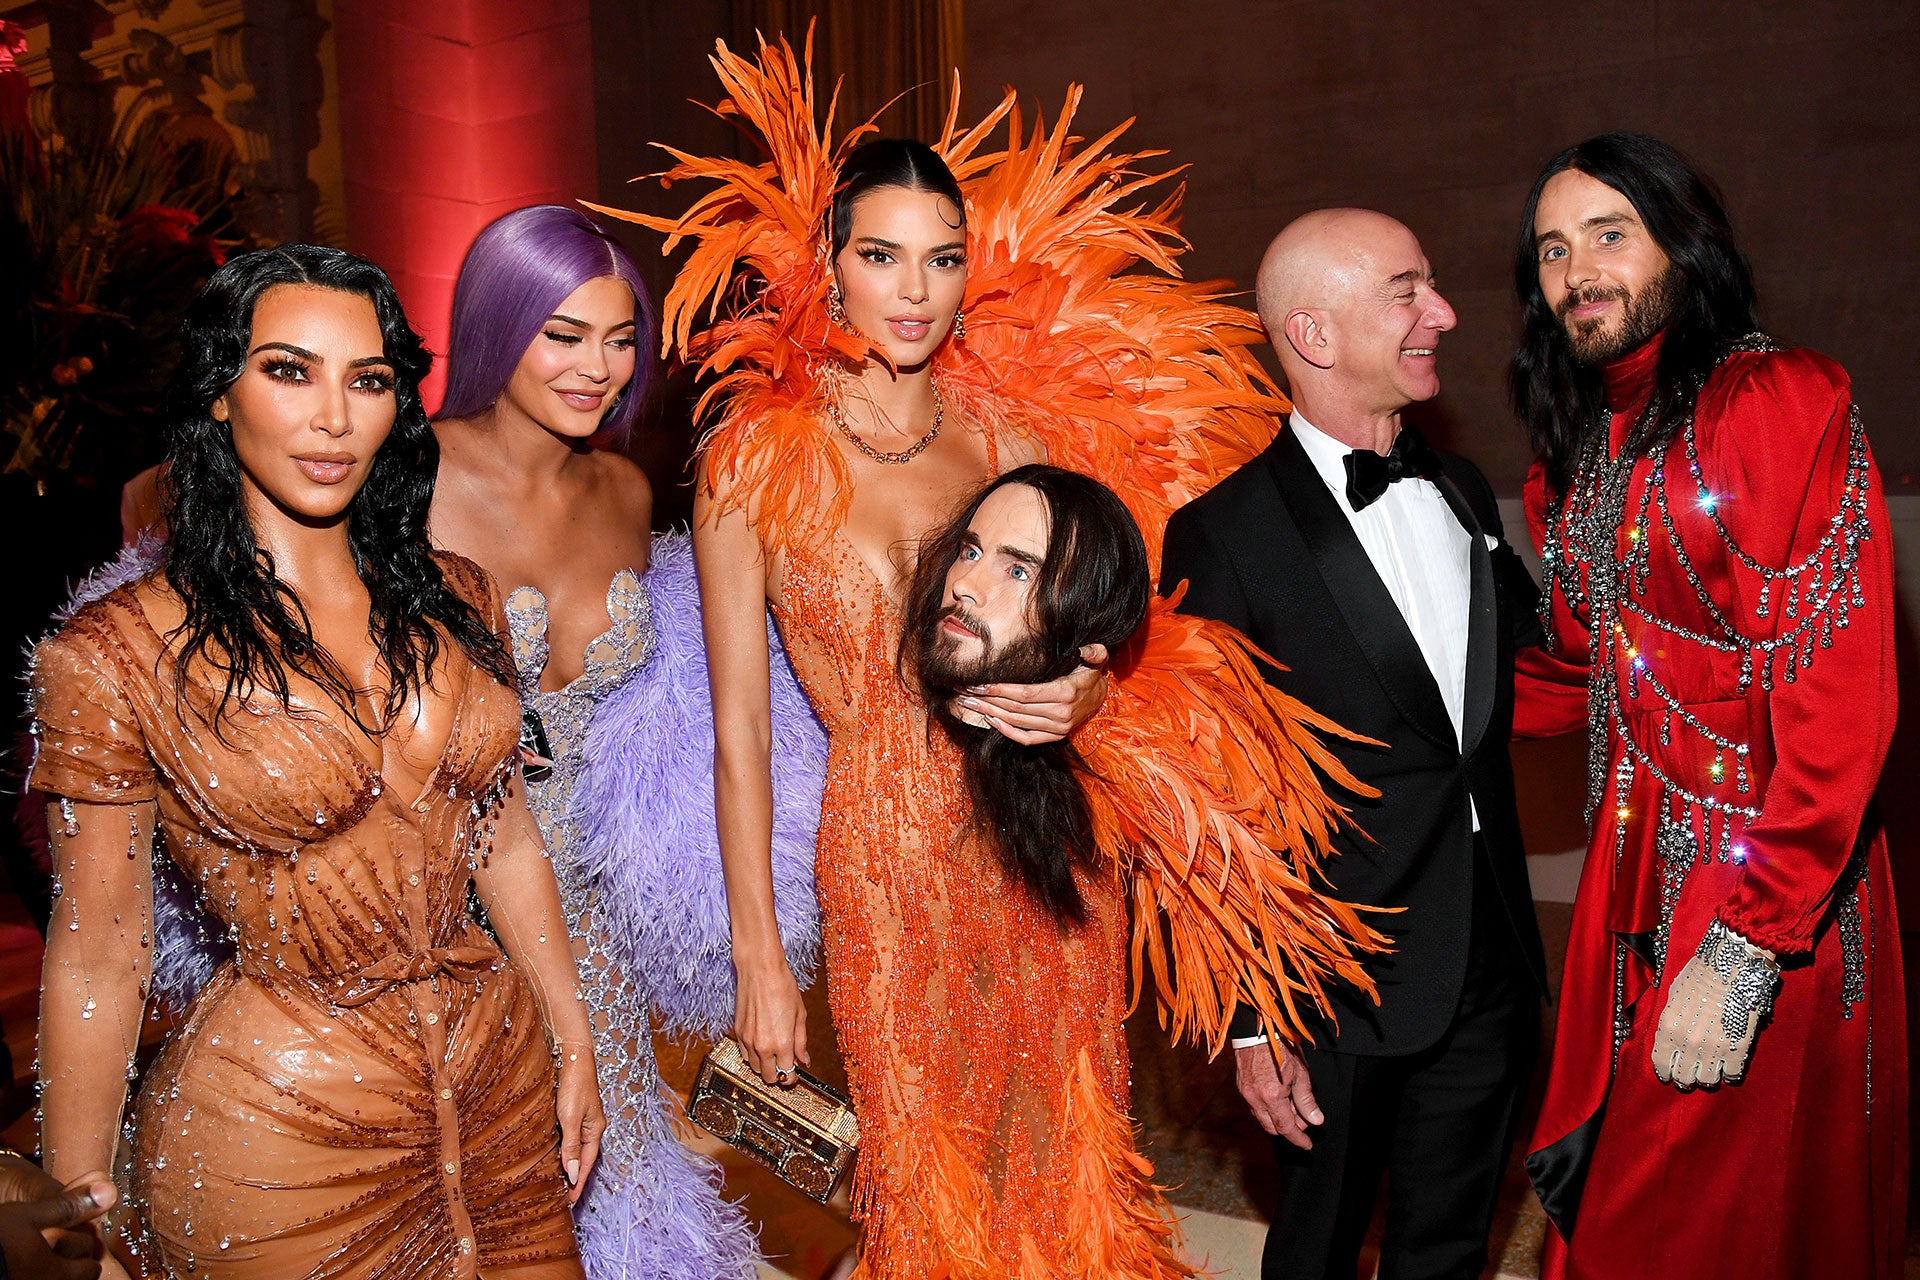 Kim Kardashian West, Kylie Jenner, Kendall Jenner, Jeff Bezos a Jared Leto na Met Gala 2019, téma Camp: Notes on Fashion, Metropolitní muzeum v new Yorku, květen 2019 Autor: Kevin Mazur/MG19/Getty Images for The Met Museum/Vogue